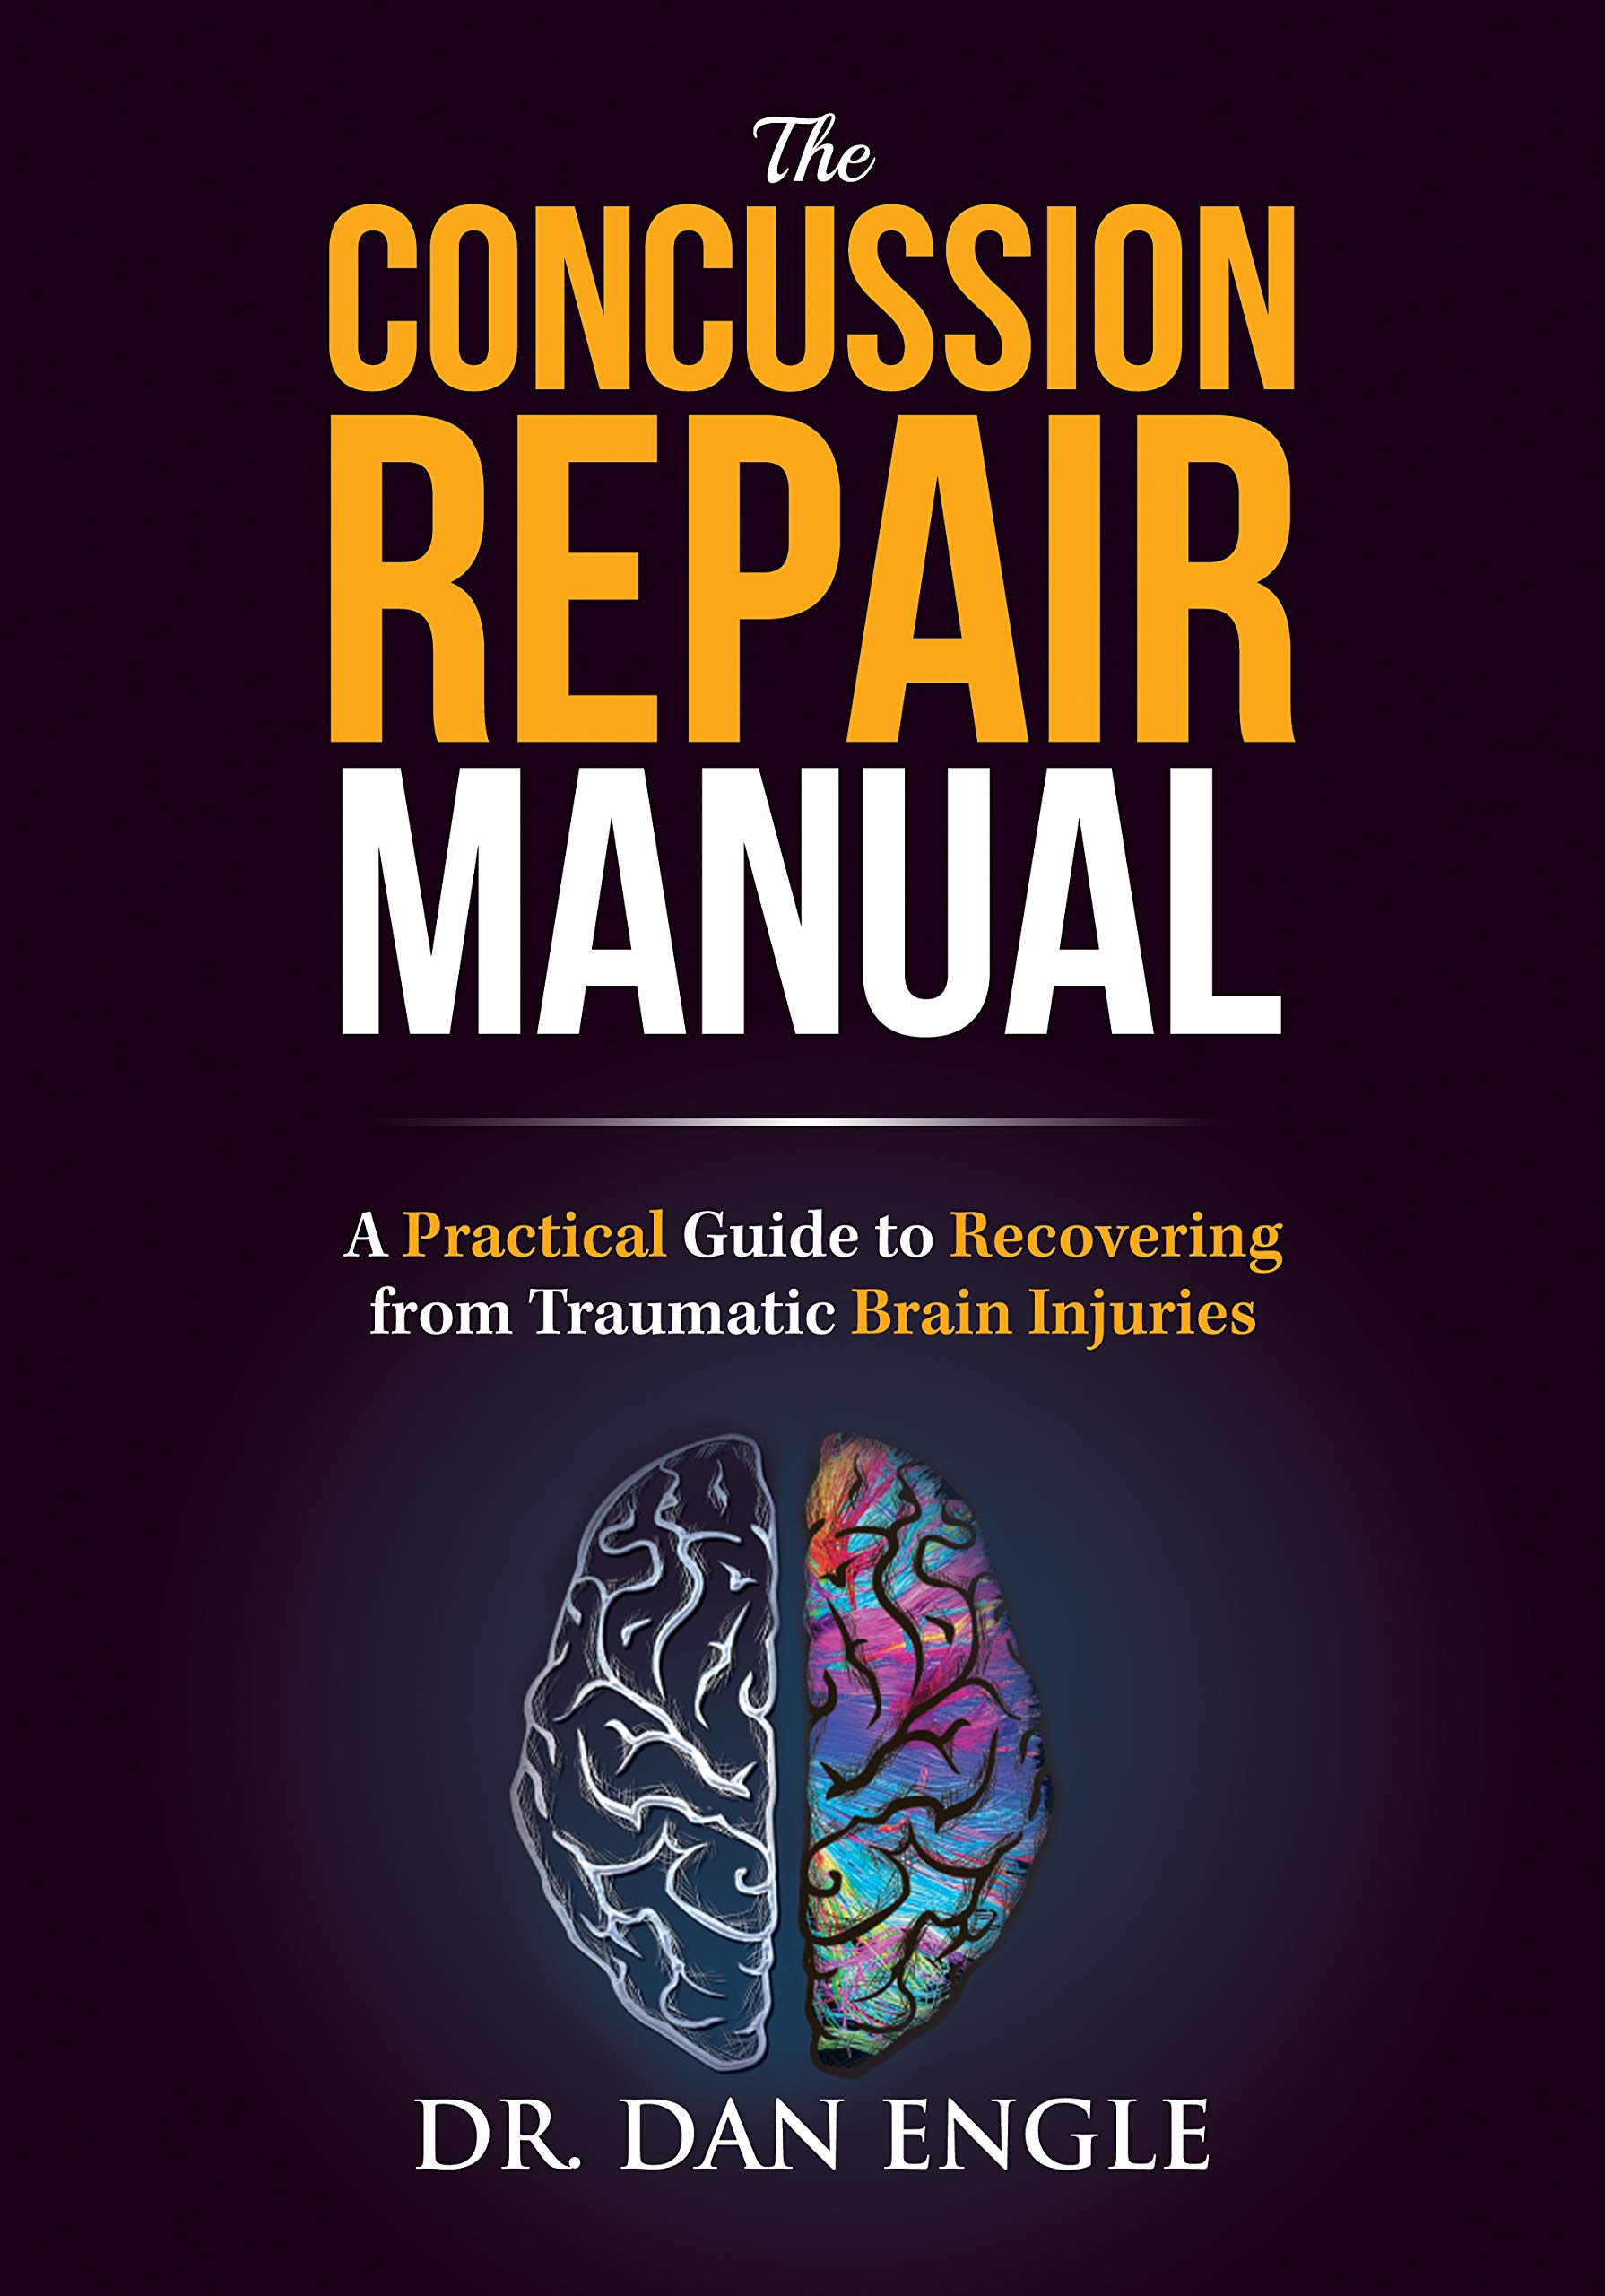 Image OfThe Concussion Repair Manual: A Practical Guide To Recovering From Traumatic Brain Injuries